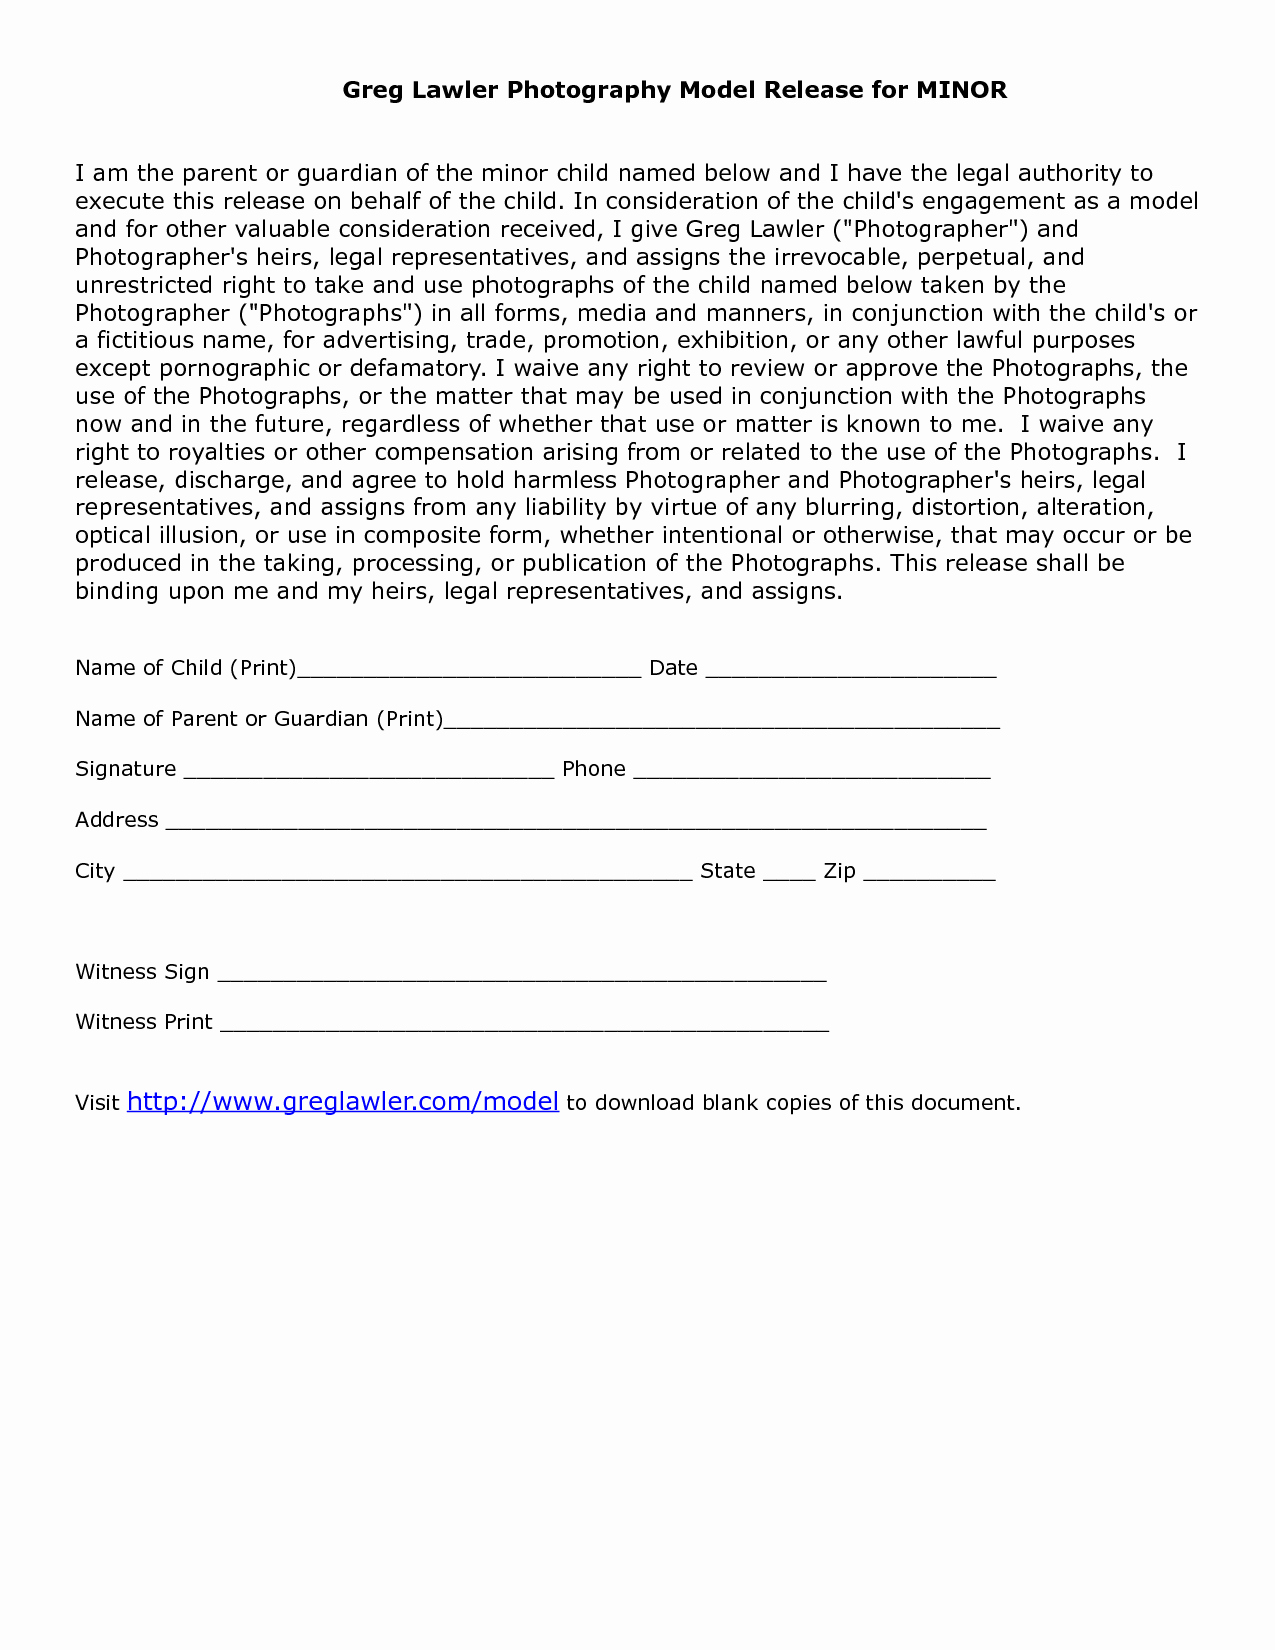 Photo Release form Template Fresh Minor Model Release form Template Link is Broken but Use